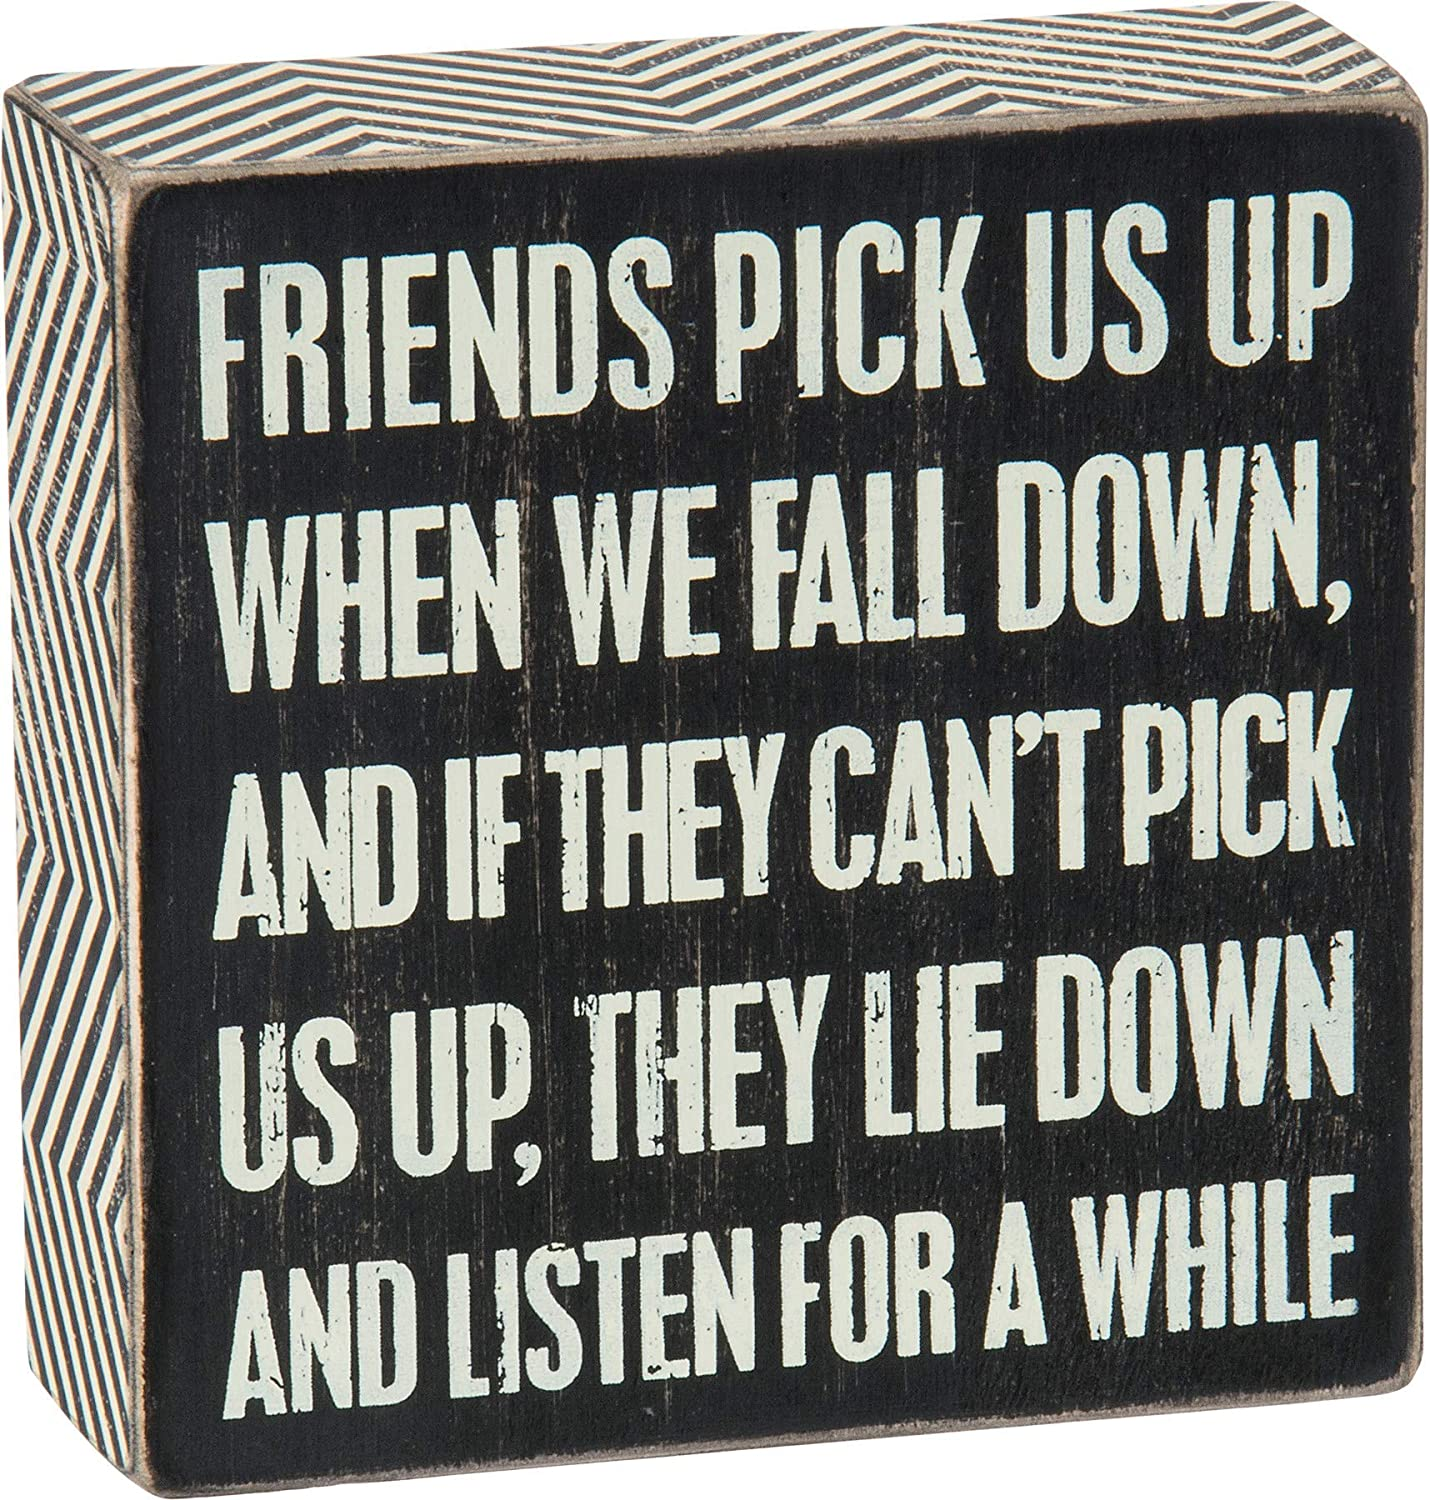 Primitives by Kathy 25168 Chevron Trimmed Box Sign, 5 x 5-Inches, Friends Pick Us Up